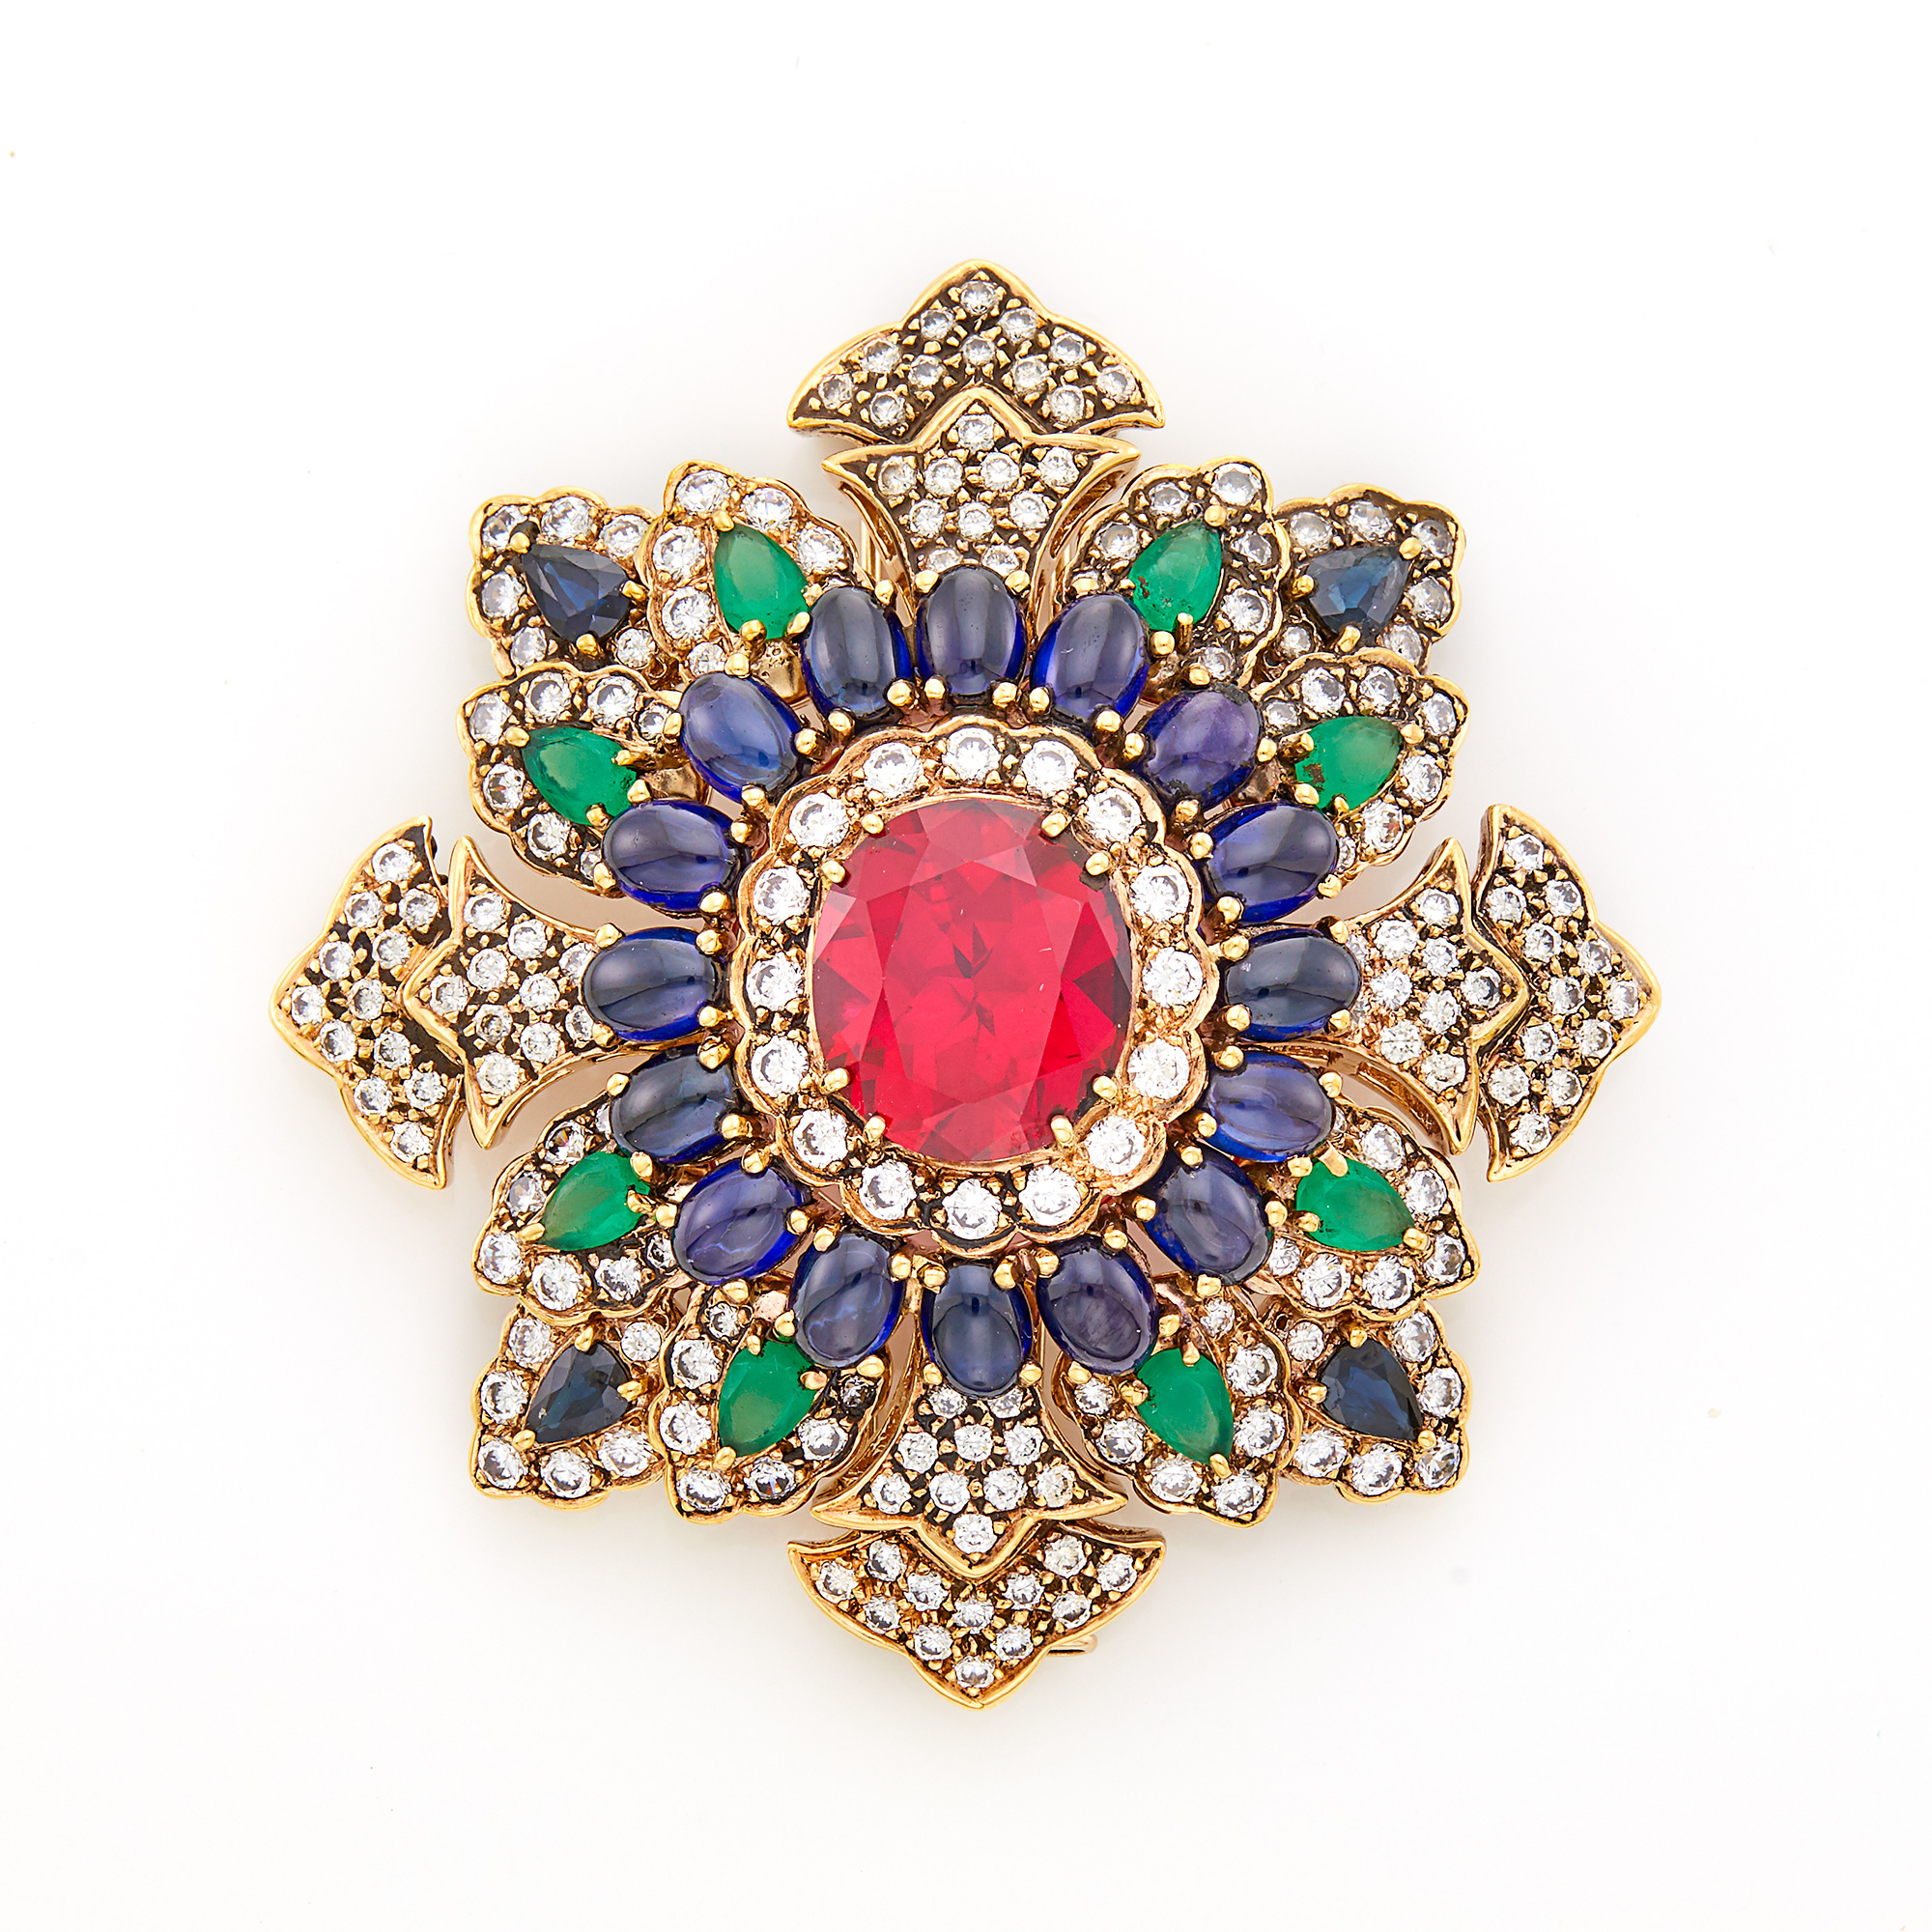 Lot image - Gold, Synthetic Colored-Stone and Cubic Zirconia Brooch